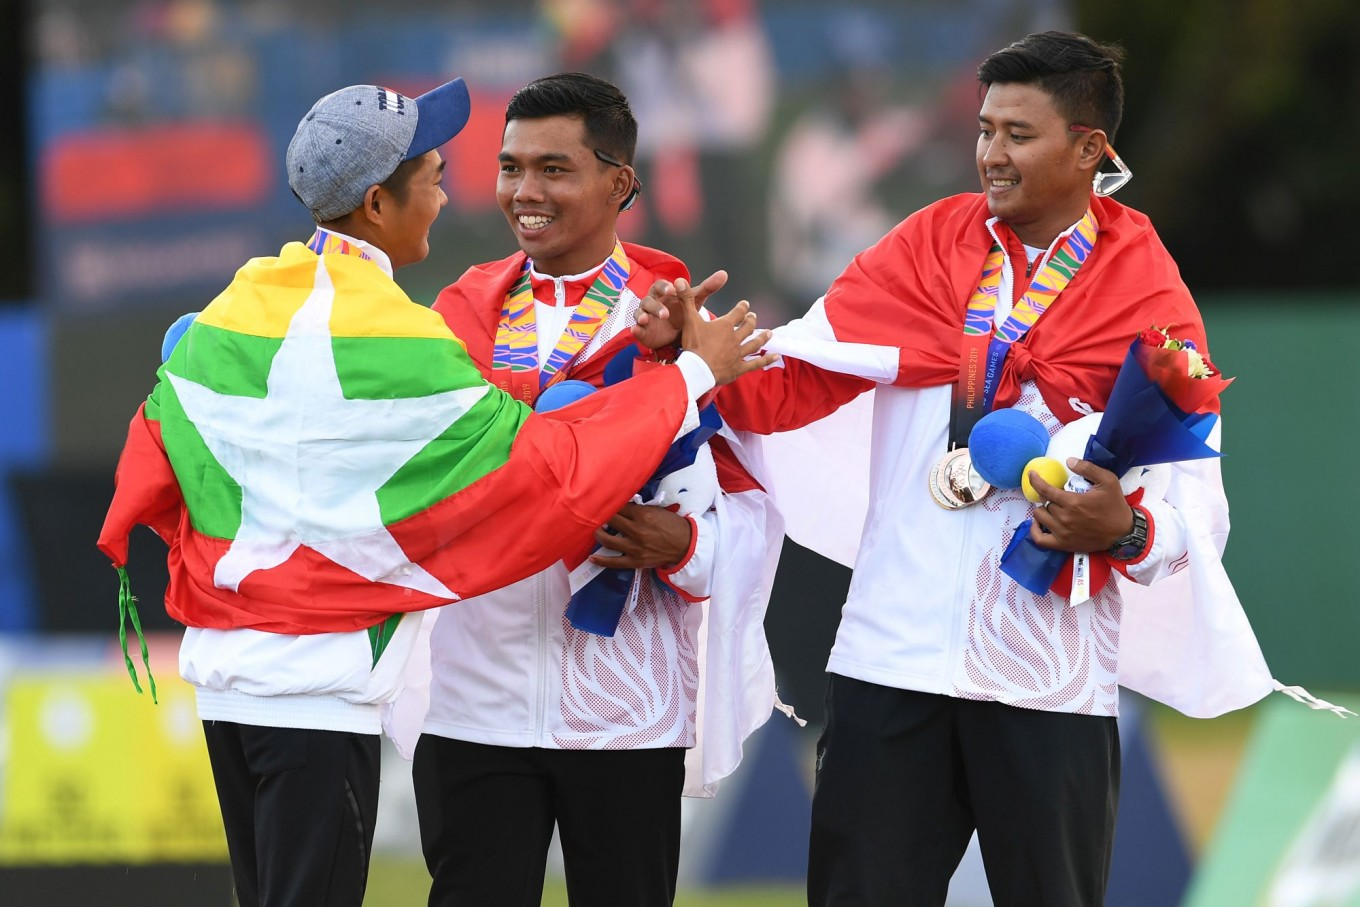 SEA Games: Fresh from 2 gold wins, Indonesian archers target Olympics